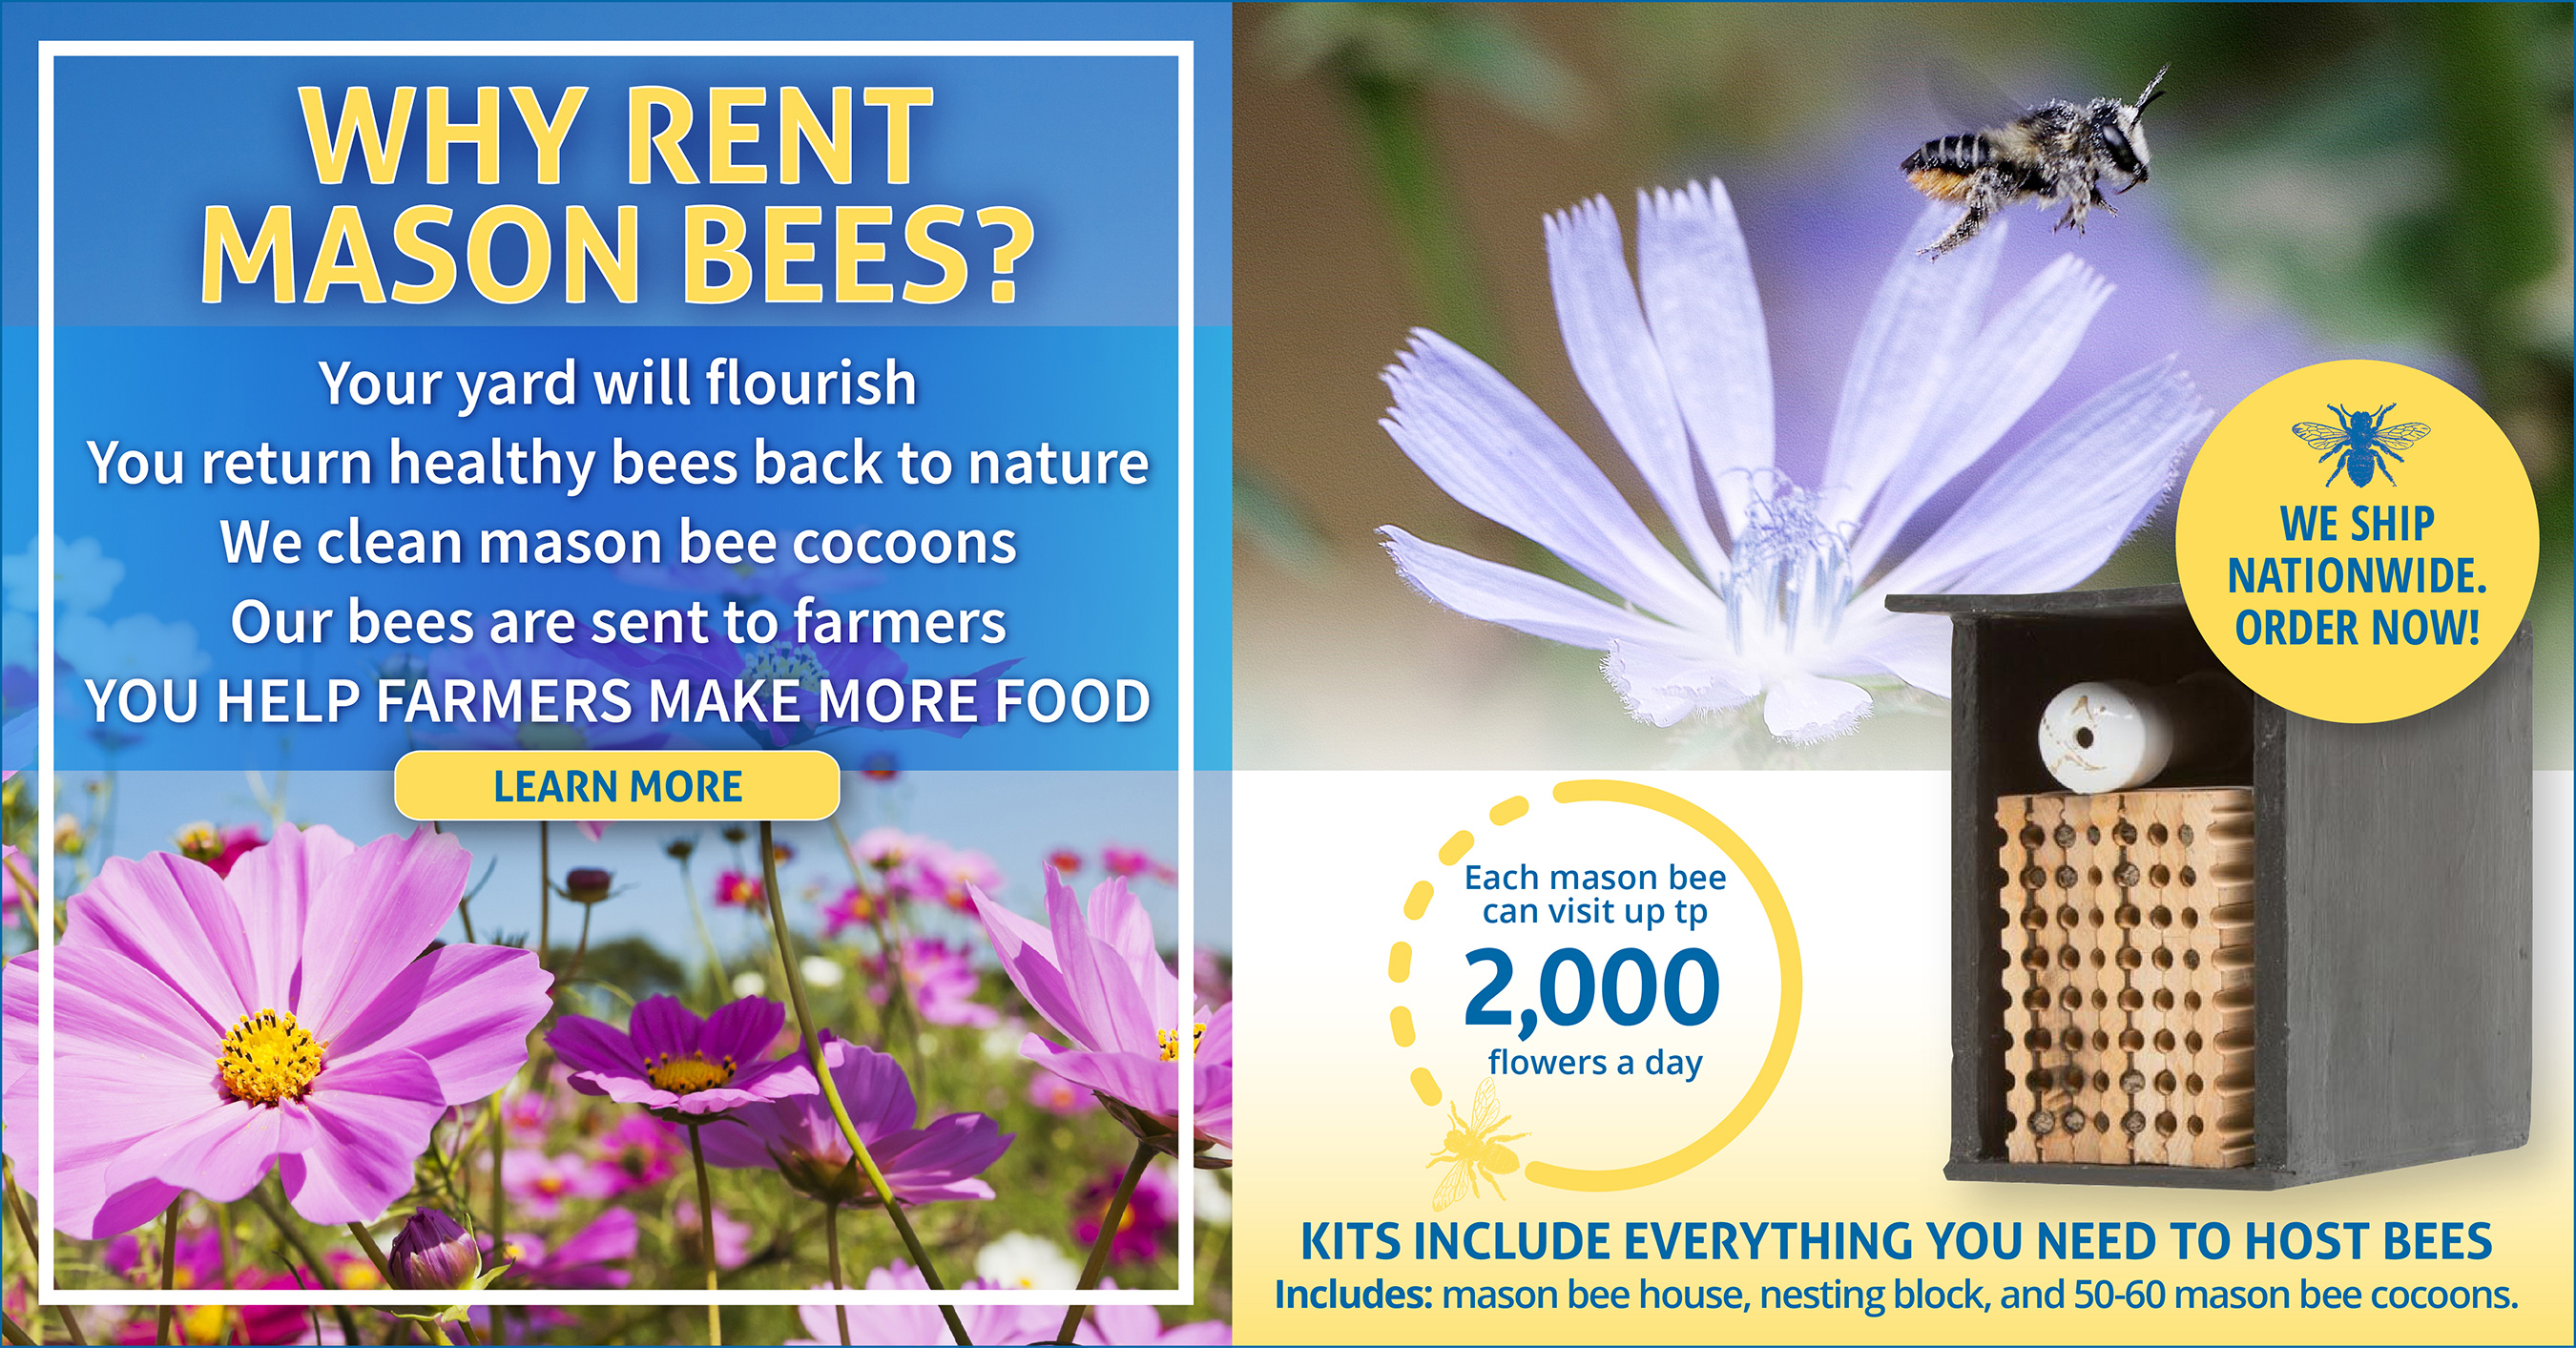 Reasons to rent solitary bees